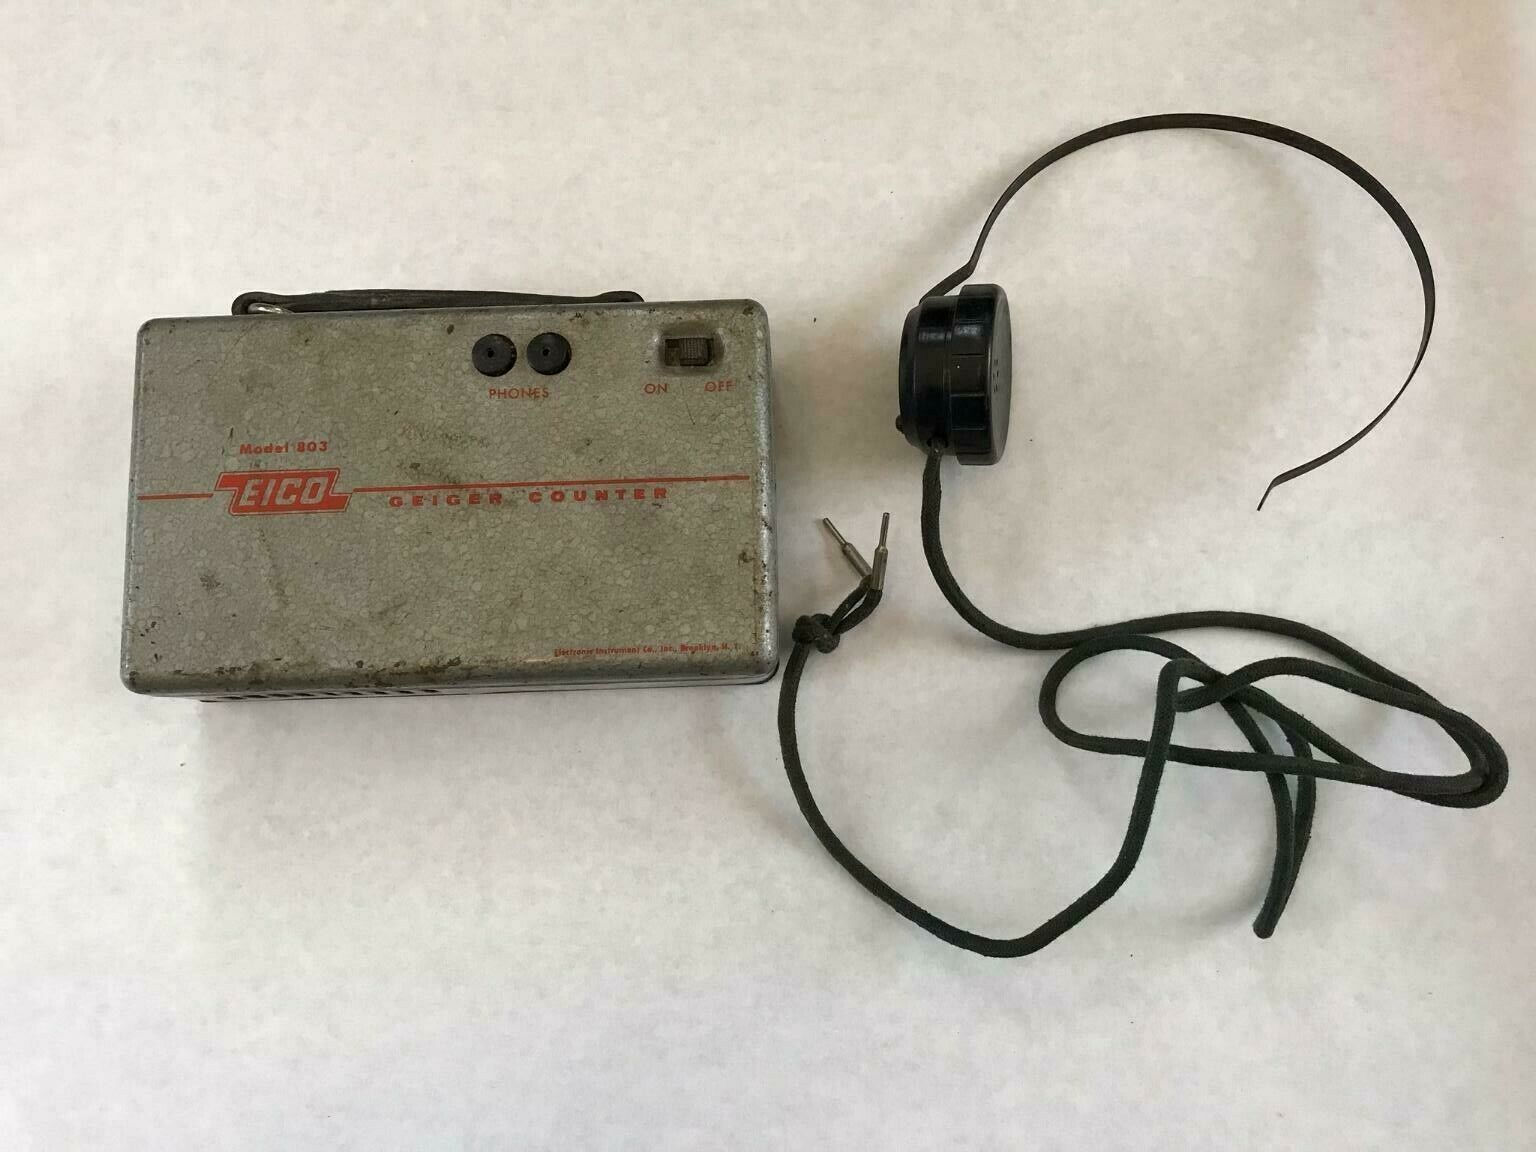 s l1600 - EICO Model 803 Vintage Geiger Counter with Headset / Brooklyn, NY USA